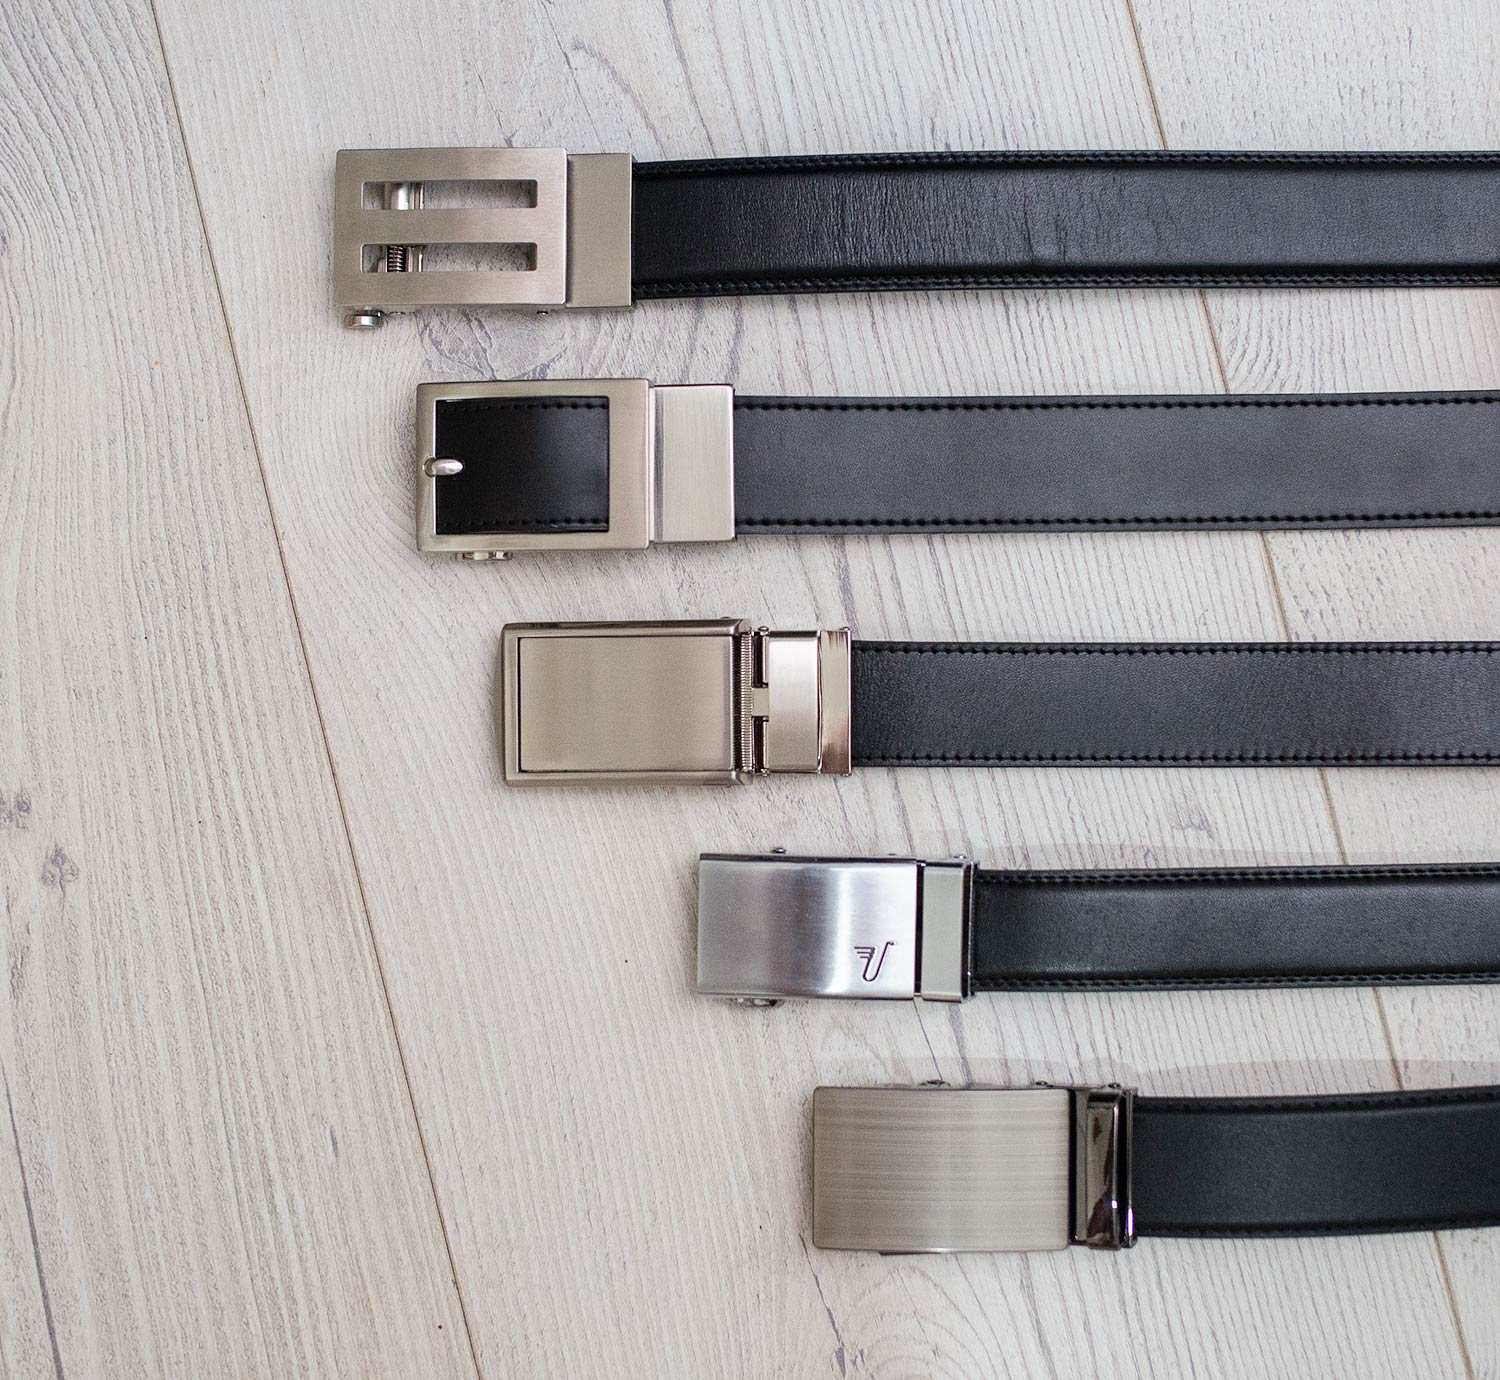 Track Belts Review Round Up Your Average Guy Ratchet belt roundup featuring kore , anson , mission and slidebelts. your average guy